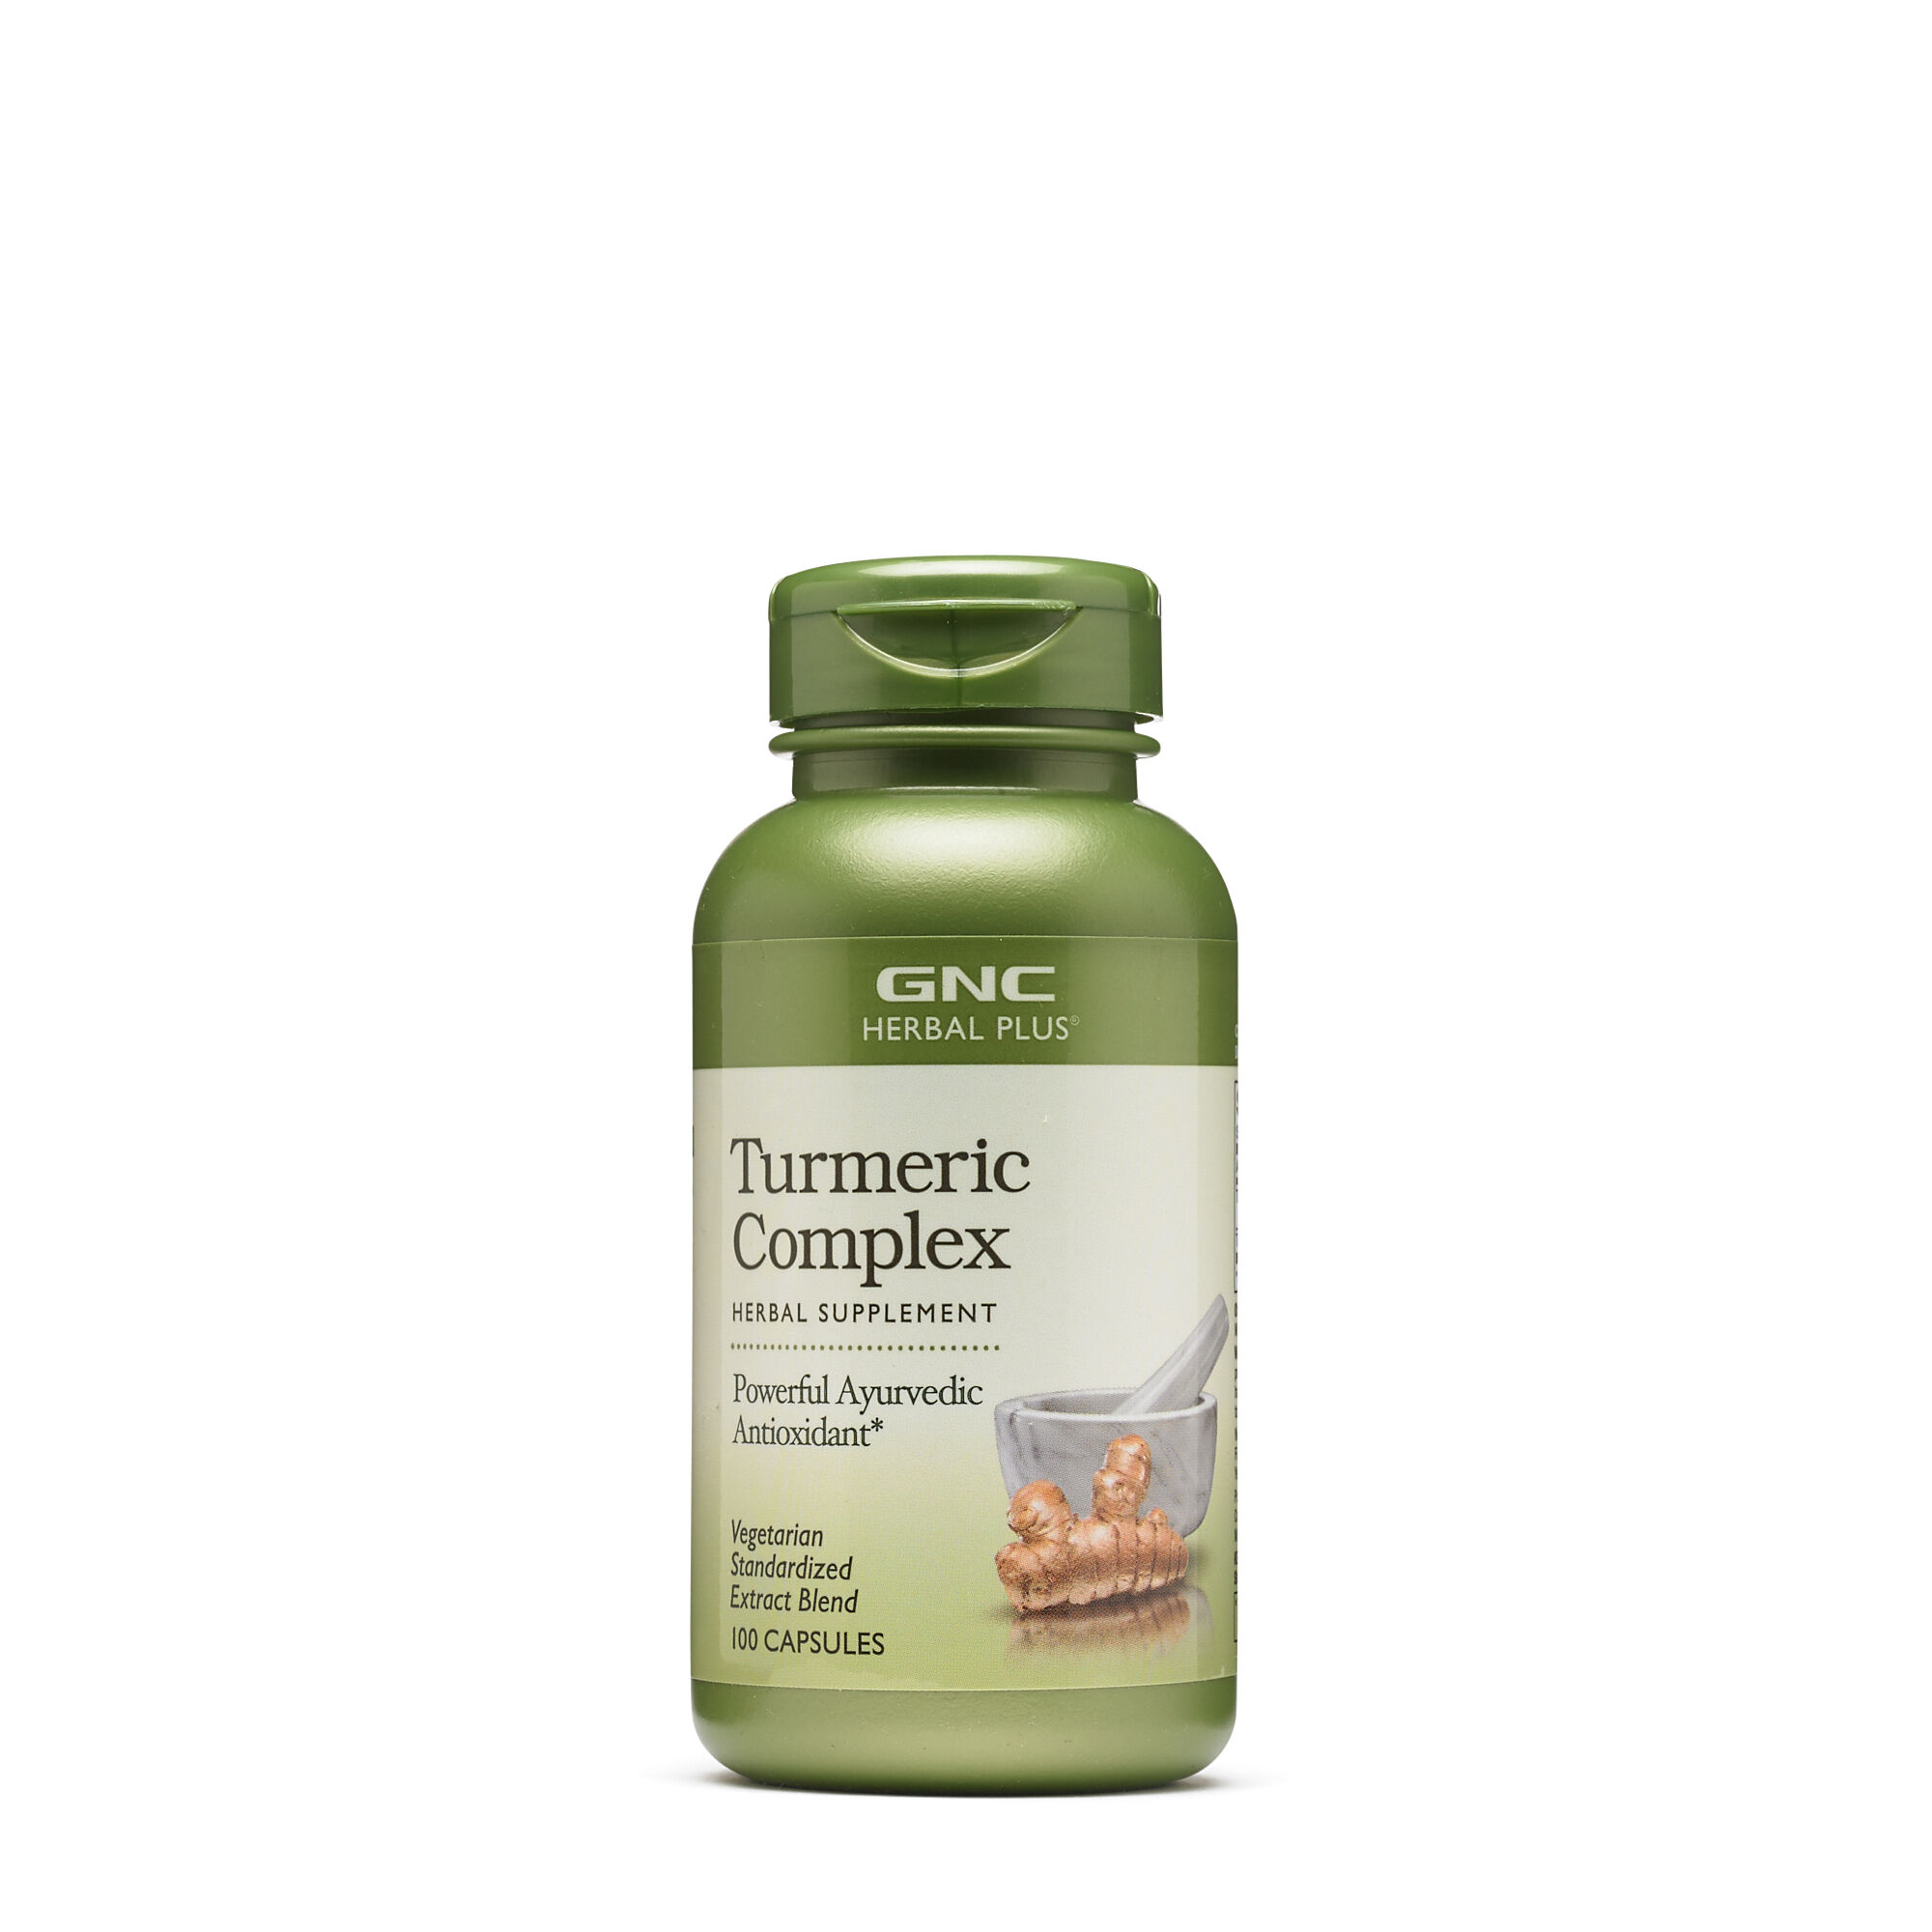 Turmeric Complex - 100 Capsules - GNC Herbal Plus - Joint Health